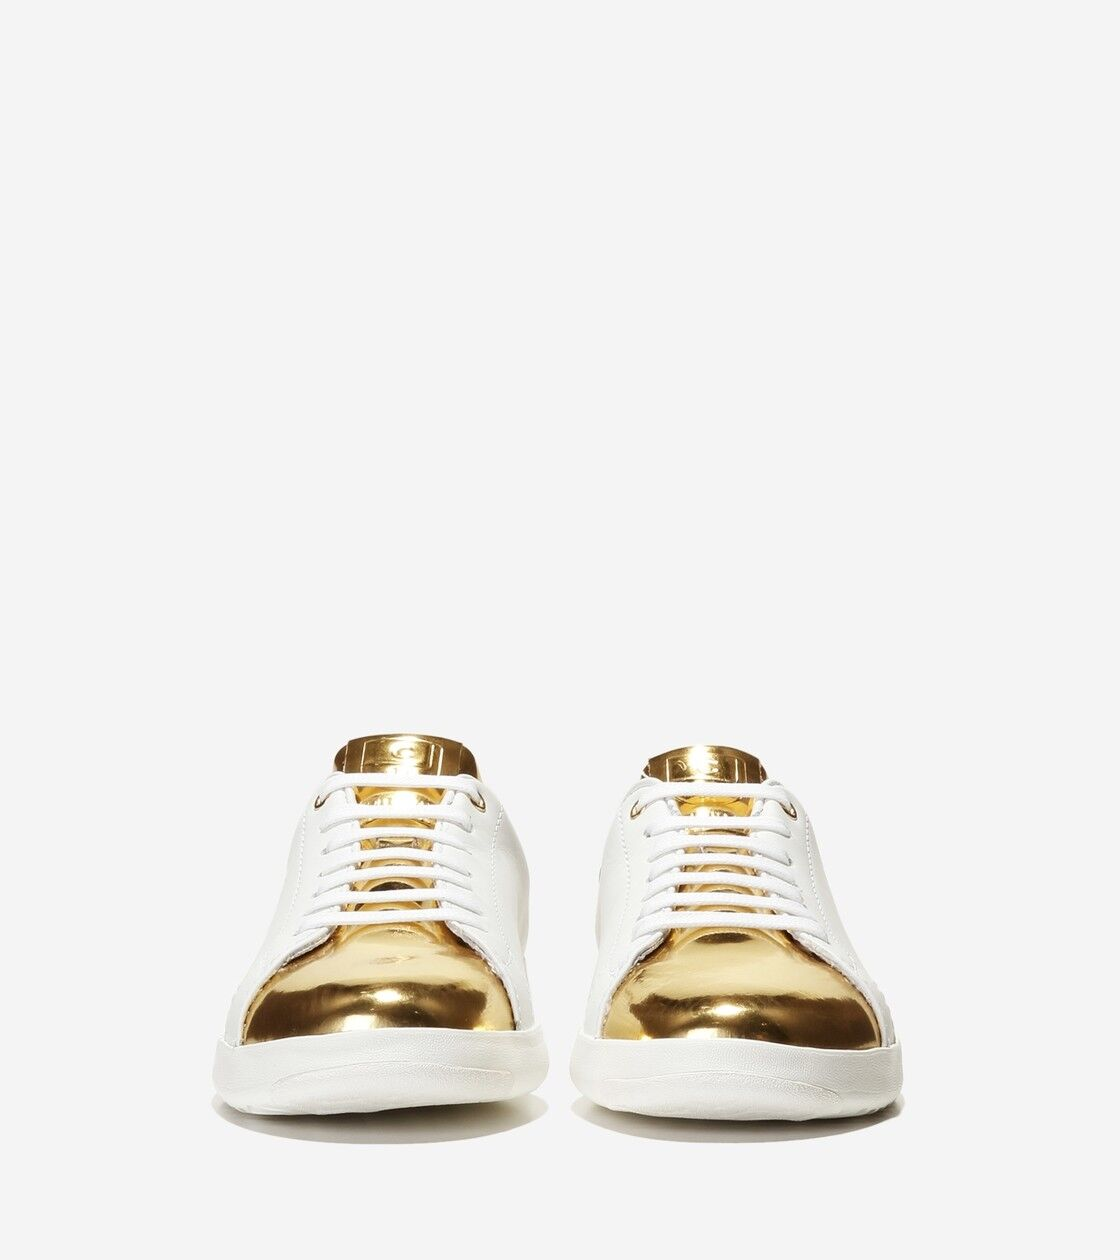 Women White Gold Leather Sneakers Cole Haan Grand Crosscourt Shoes NEW NEW Shoes b964c7